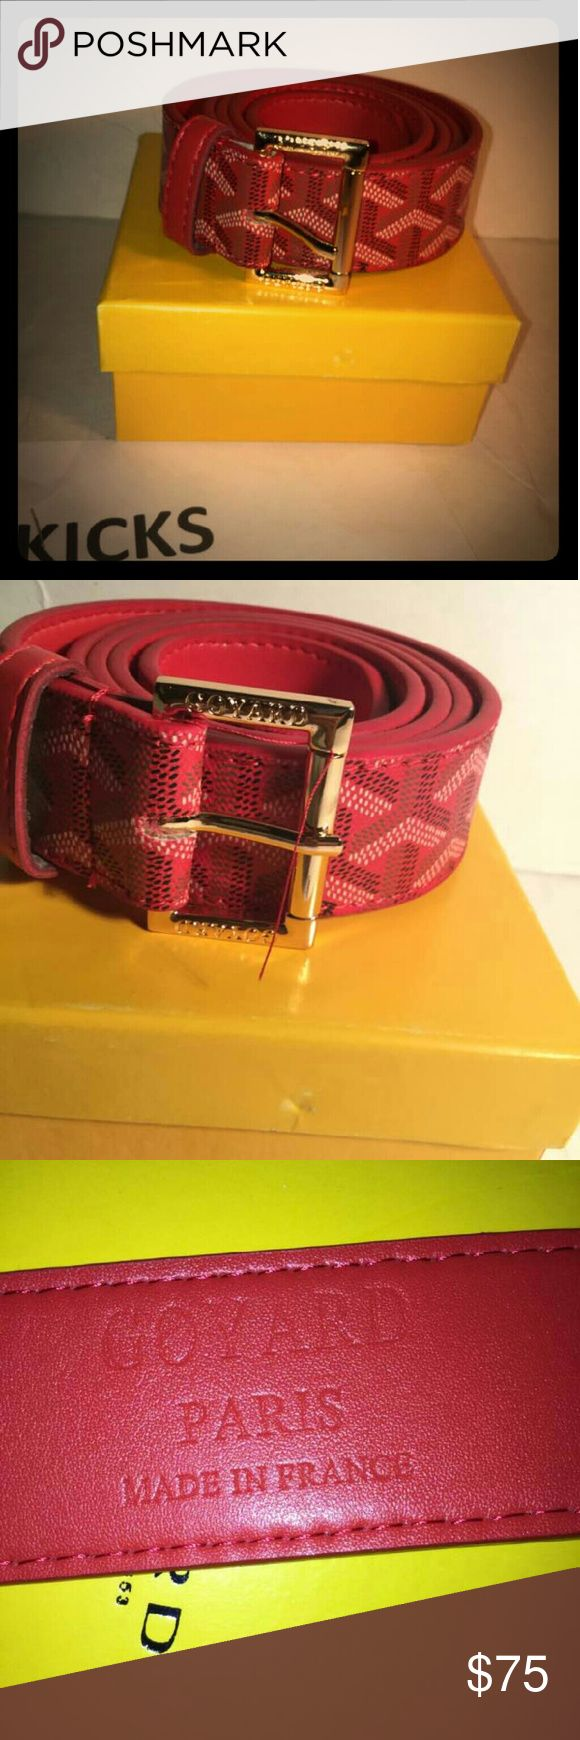 Goyard belt TOP QUALITY COMES WITH ORIGINAL BOX SHIPS OUT SAME DAY! Here to make people stop and stare at you !???? Offer price Accessories Belts